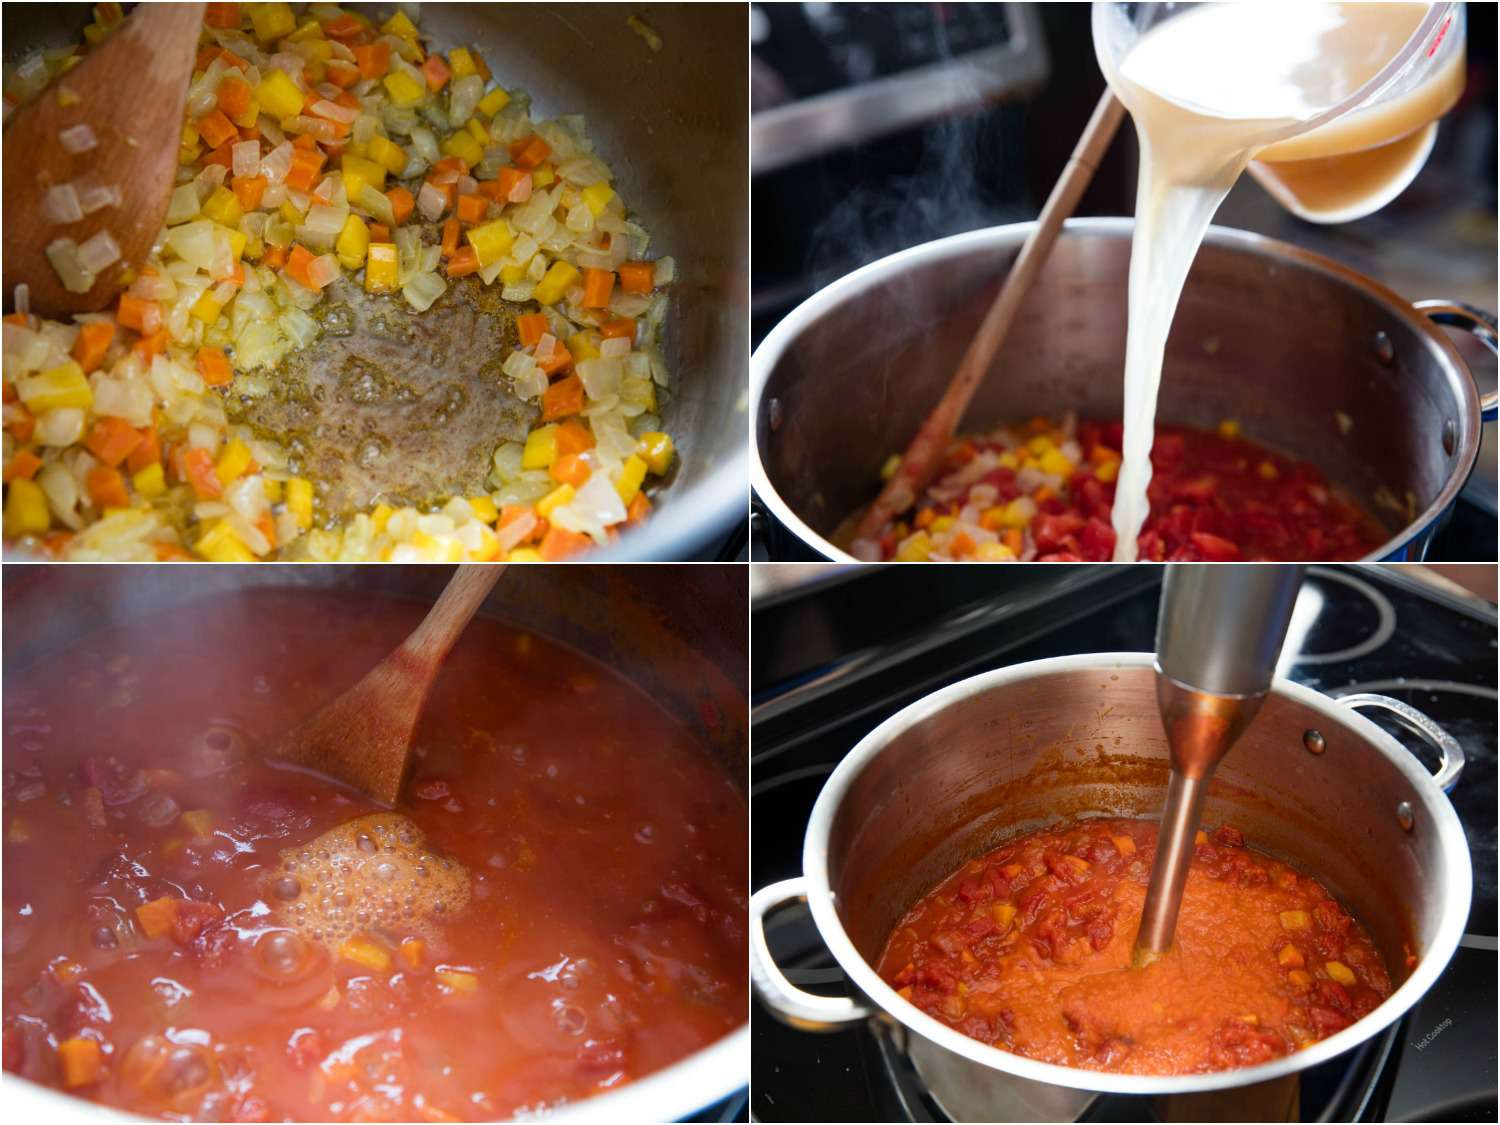 Collage of making tomato basil soup: sautéing vegetables in a pot, adding tomatoes and stock, stirring with a wooden soup, puréeing with an immersion blender